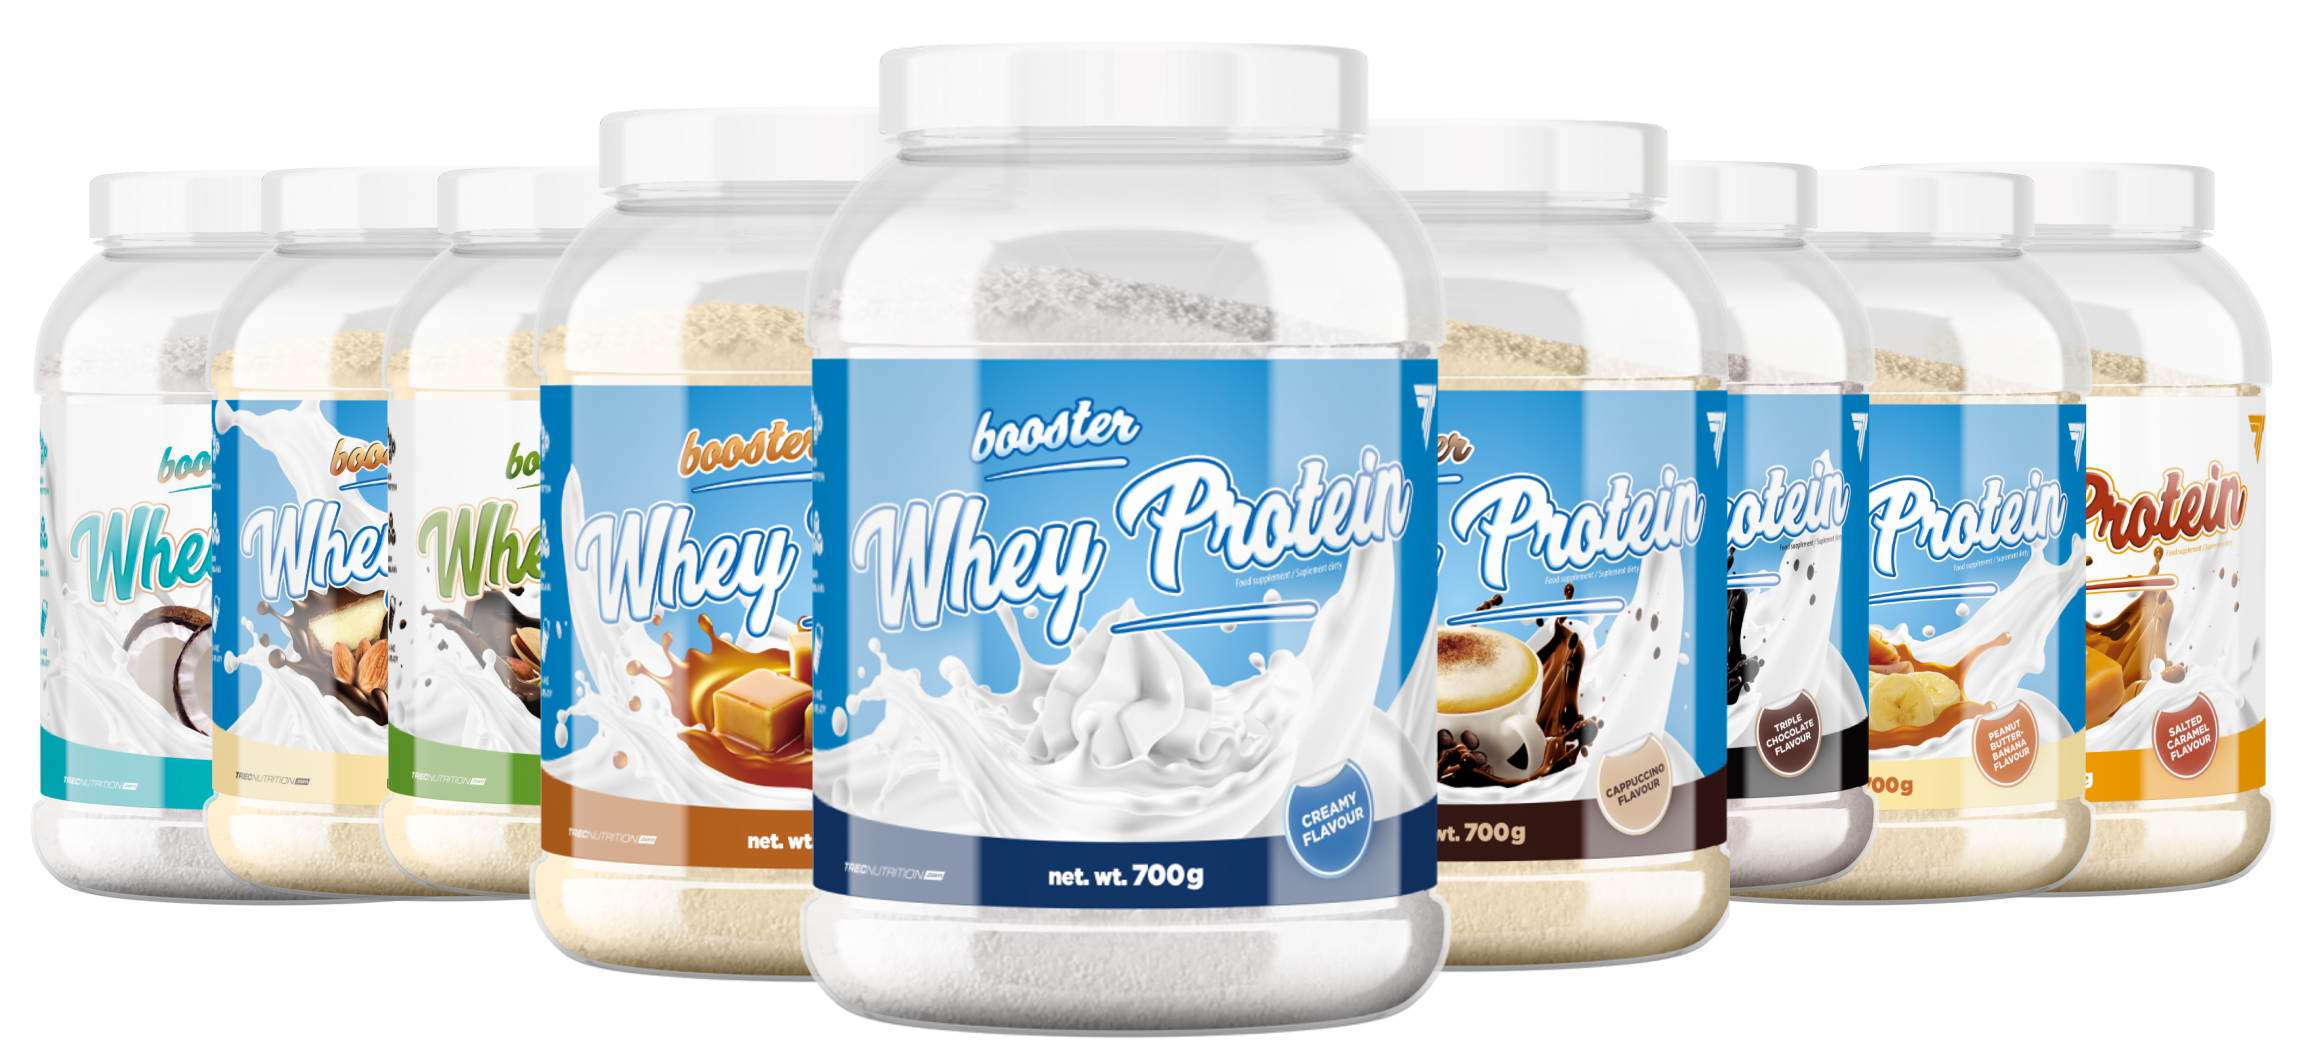 trec_whey_booster_front.png